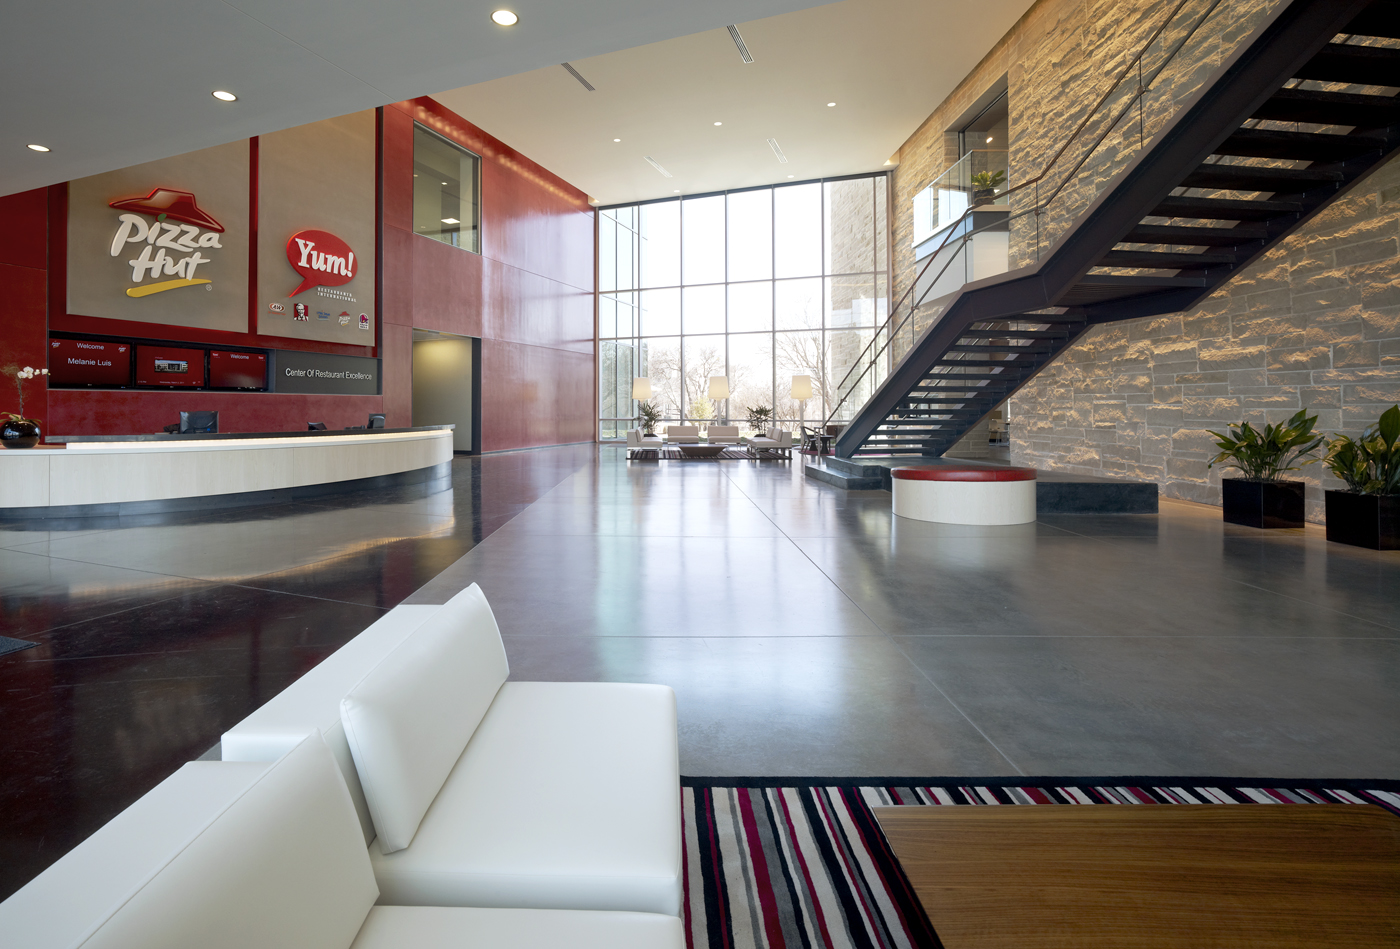 Seattle local business news and data architecture engineering callison does the for Interior design services plano